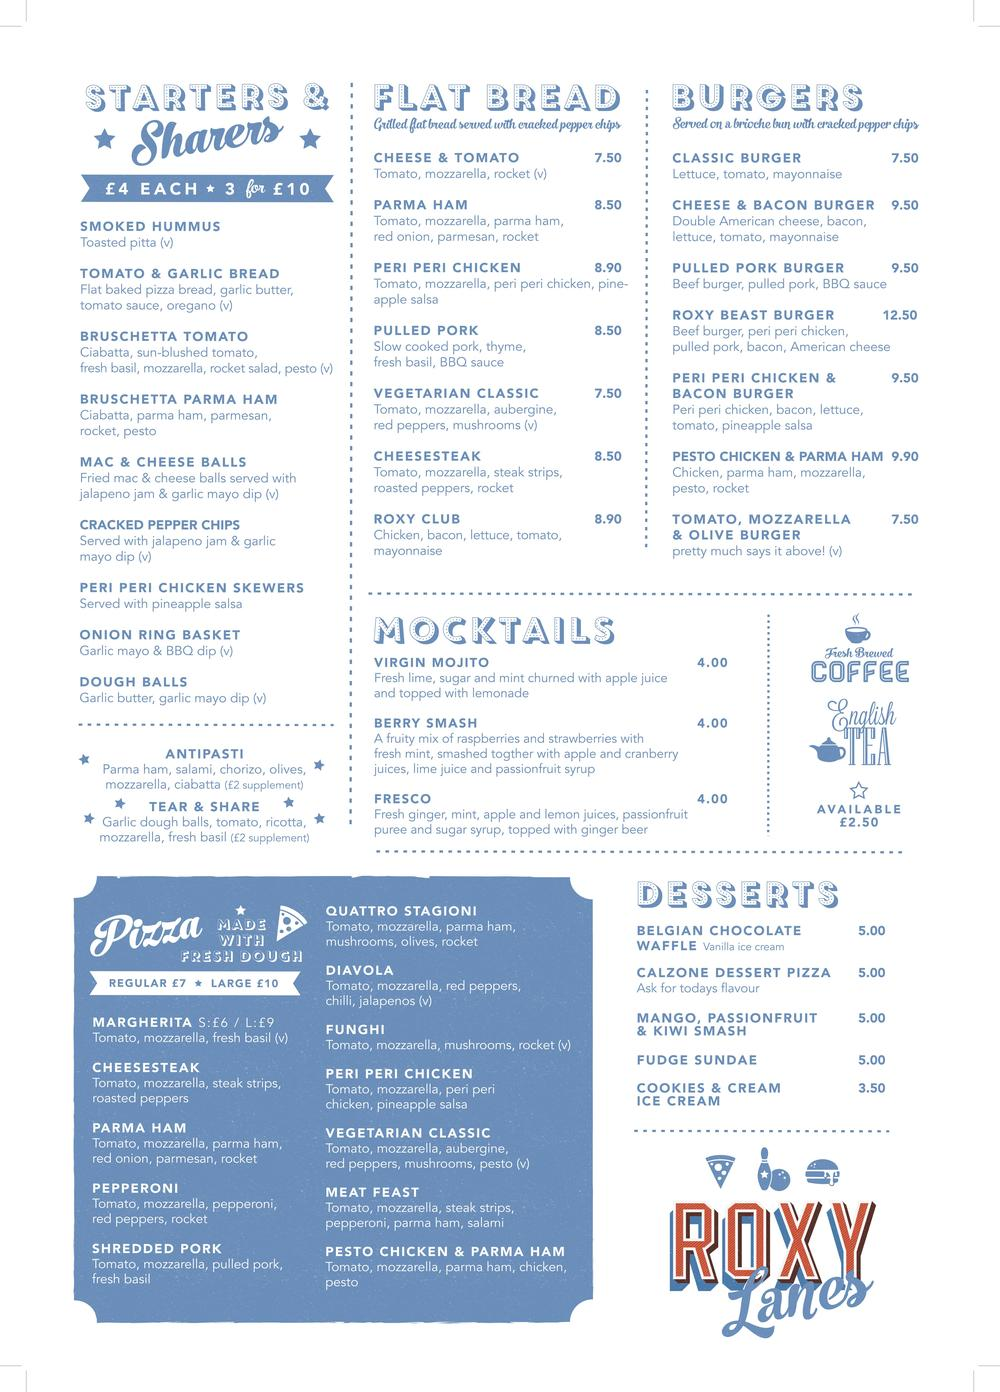 Roxy Lanes Food Menu